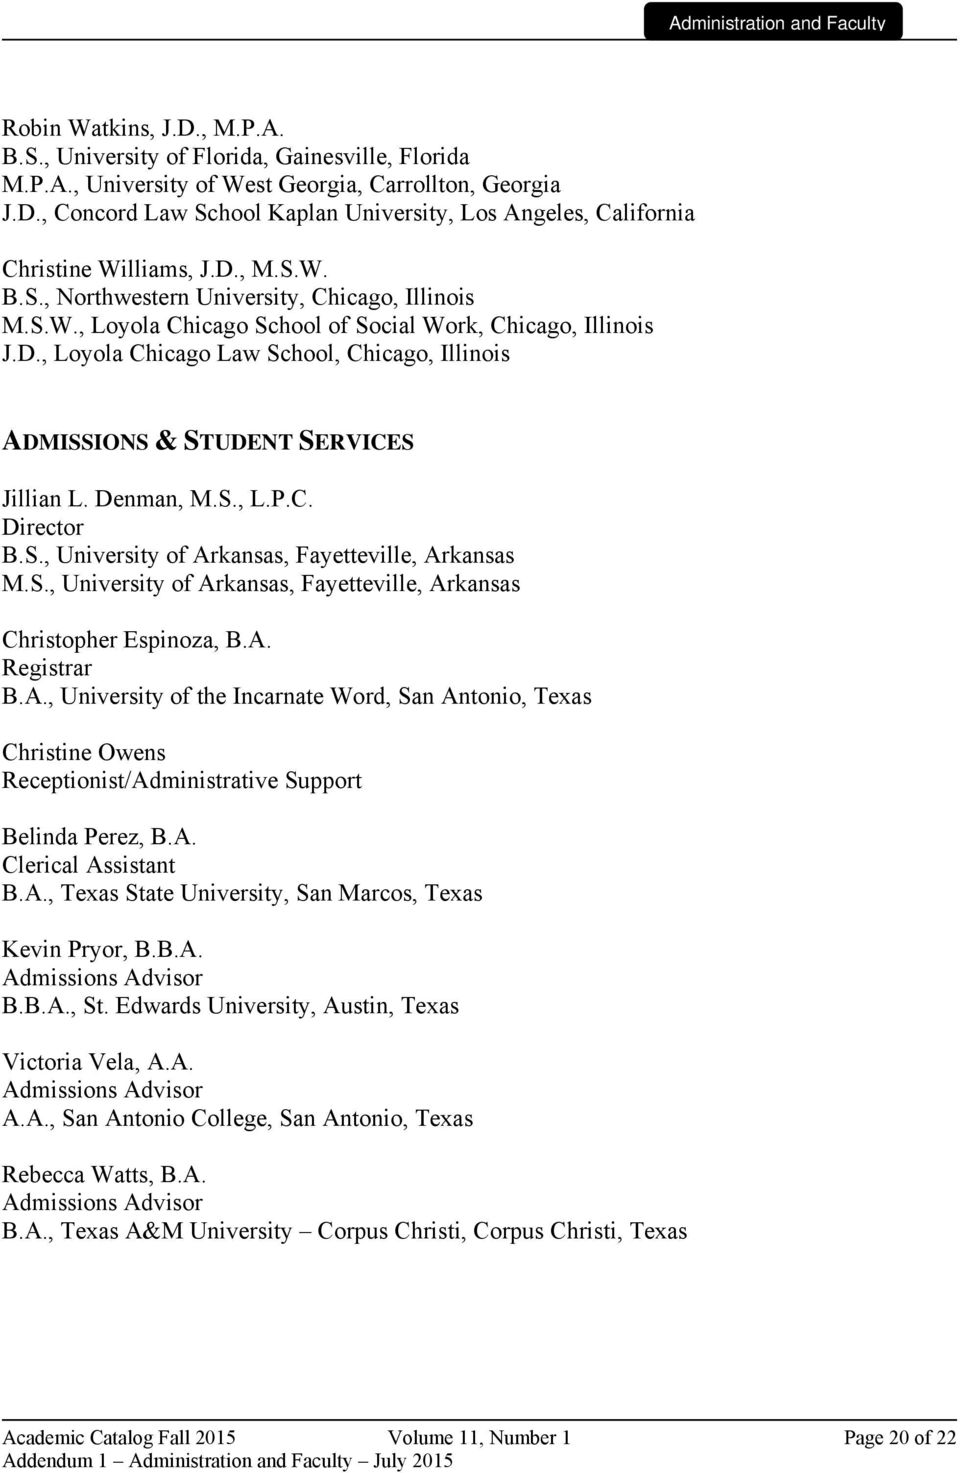 Denman, M.S., L.P.C. Director B.S., University of Arkansas, Fayetteville, Arkansas M.S., University of Arkansas, Fayetteville, Arkansas Christopher Espinoza, B.A. Registrar B.A., University of the Incarnate Word, San Antonio, Texas Christine Owens Receptionist/Administrative Support Belinda Perez, B.